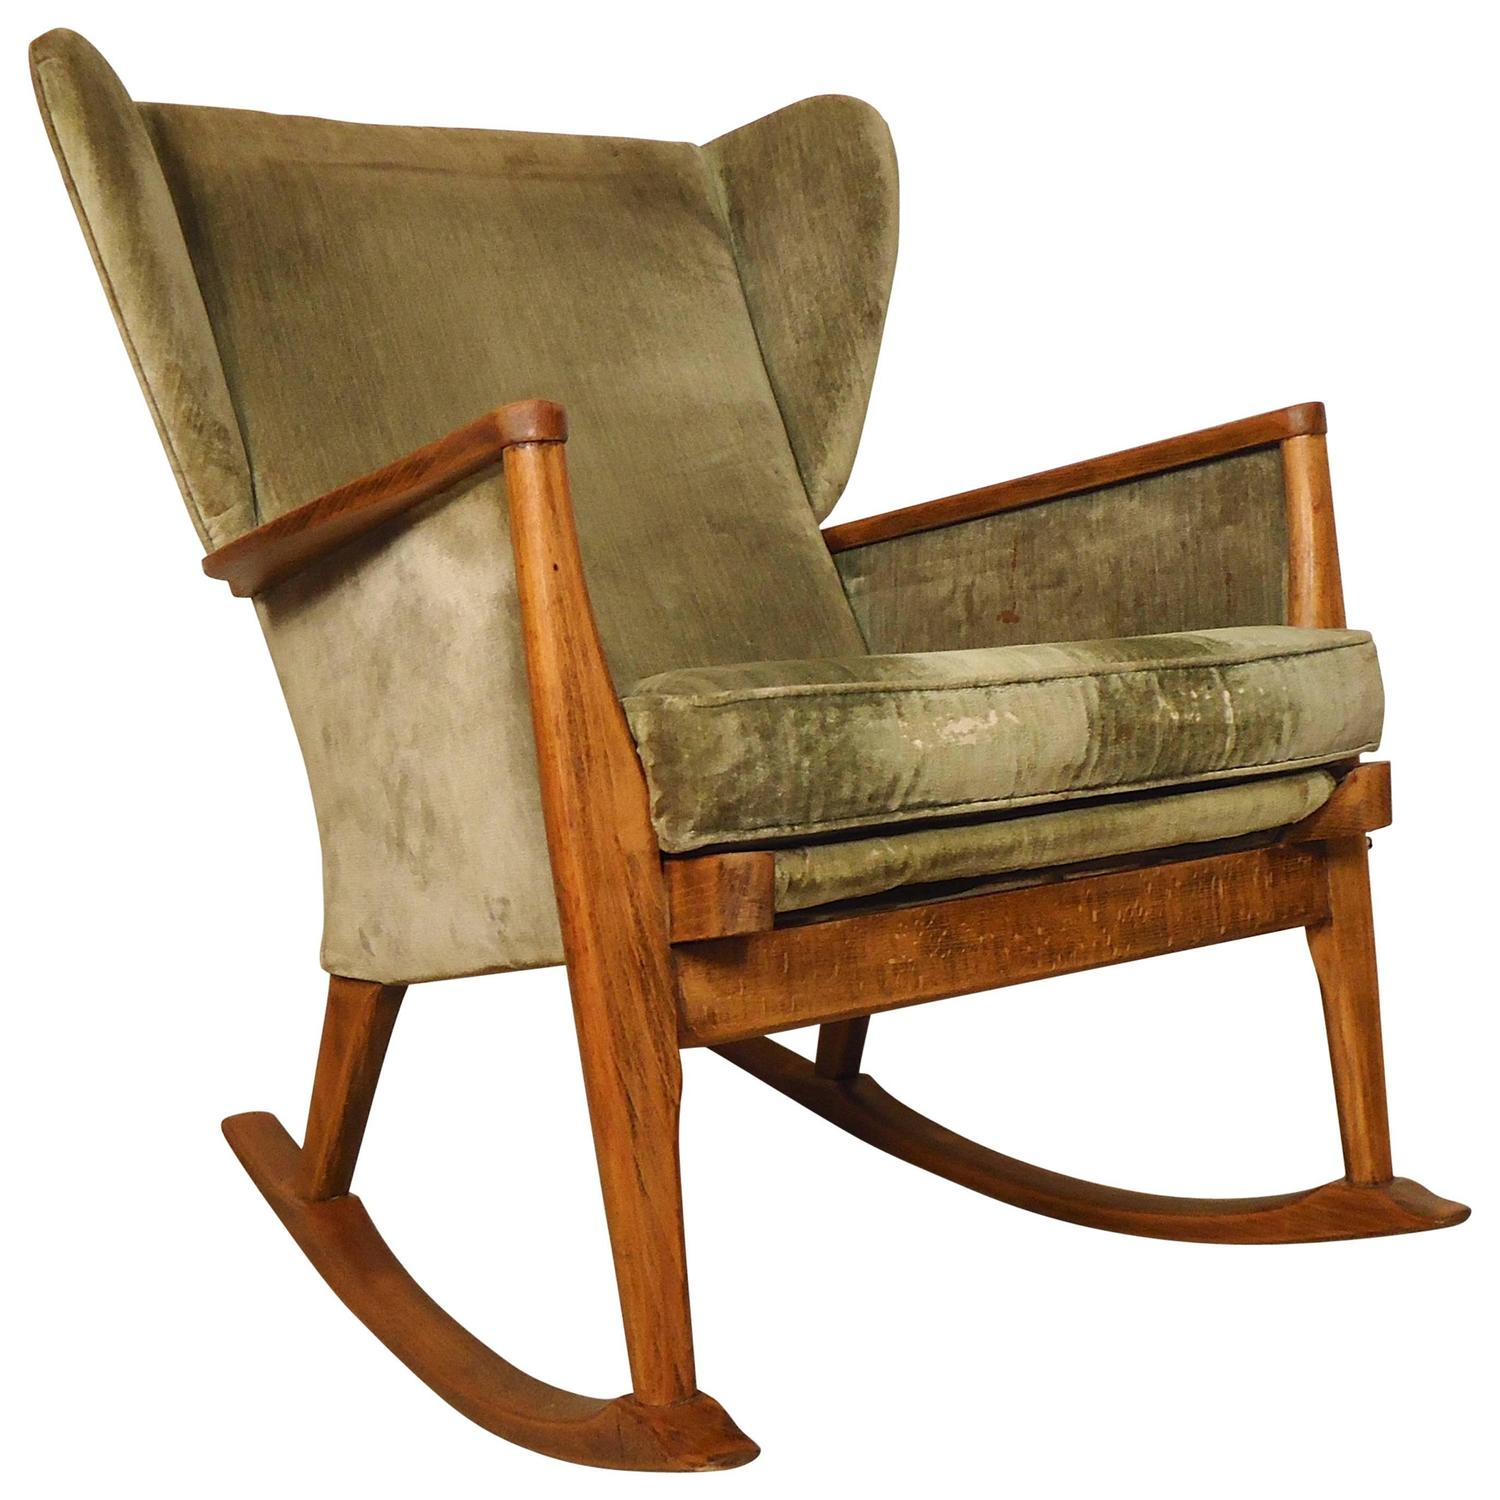 Remarkable Parker Knoll Wingback Rocking Chair For Sale At 1Stdibs Onthecornerstone Fun Painted Chair Ideas Images Onthecornerstoneorg